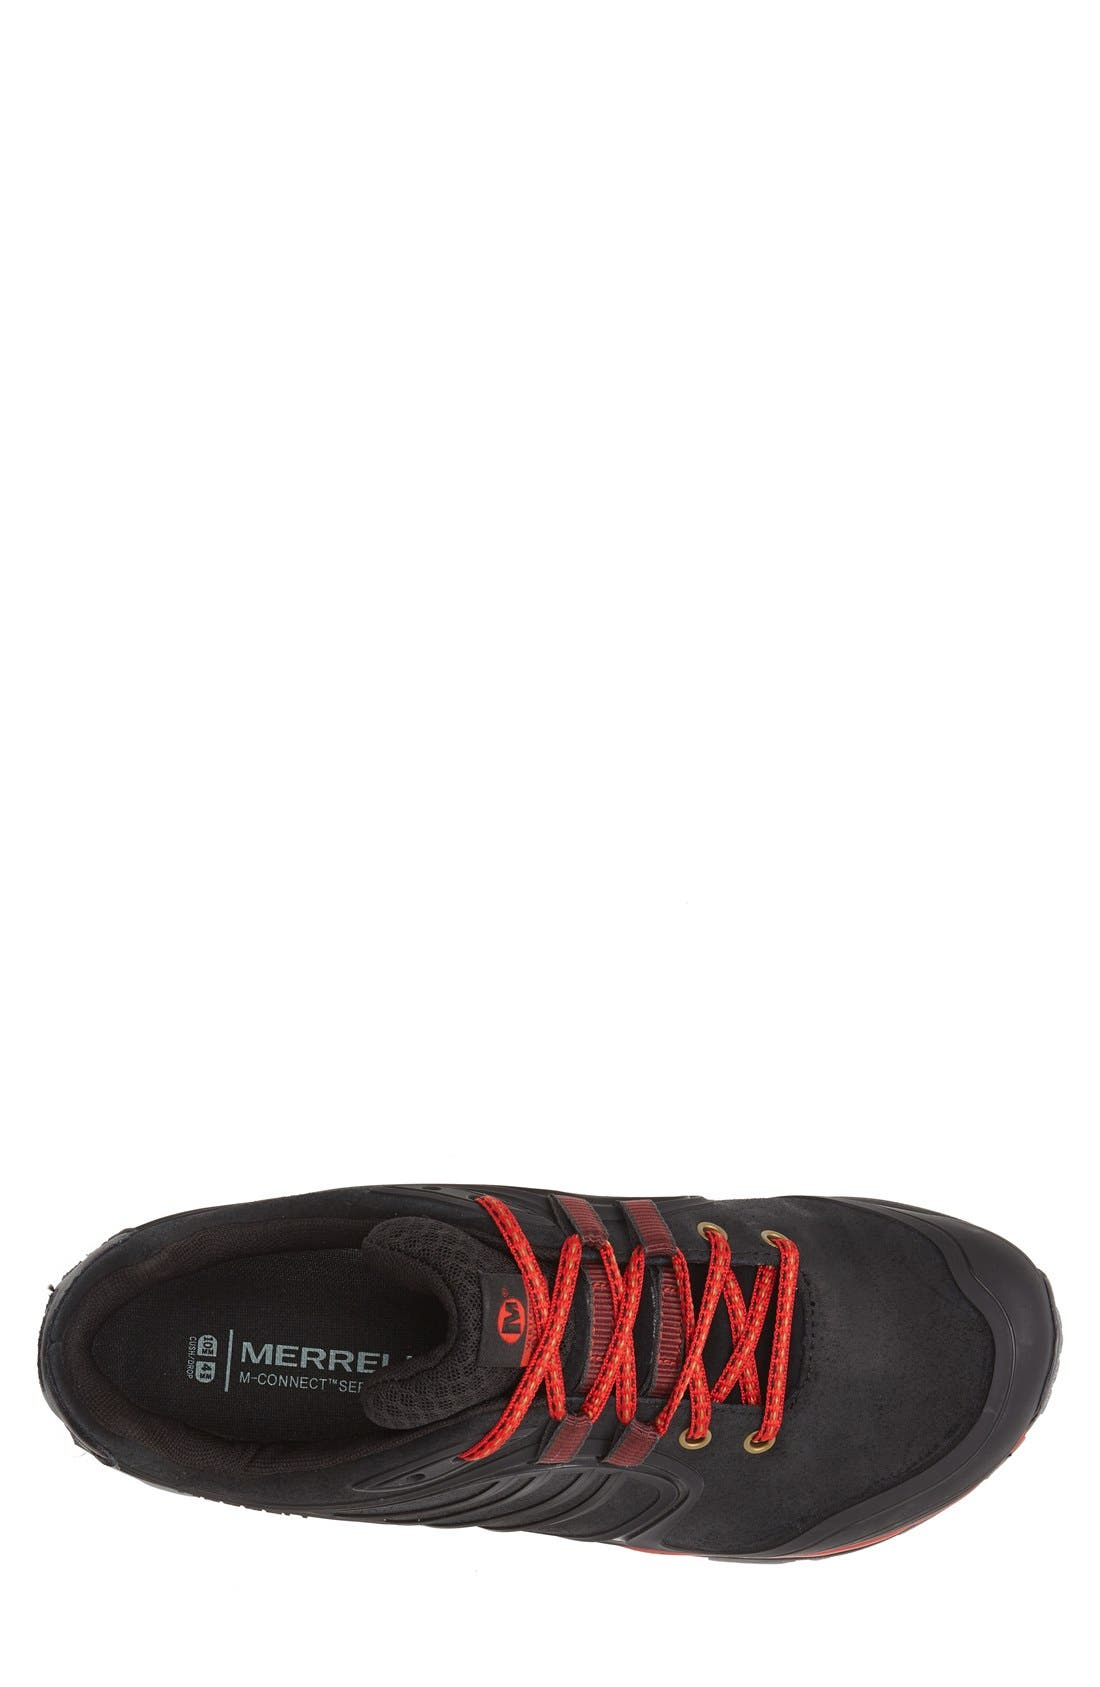 Alternate Image 3  - Merrell 'Verterra' Waterproof Hiking Shoe (Men)